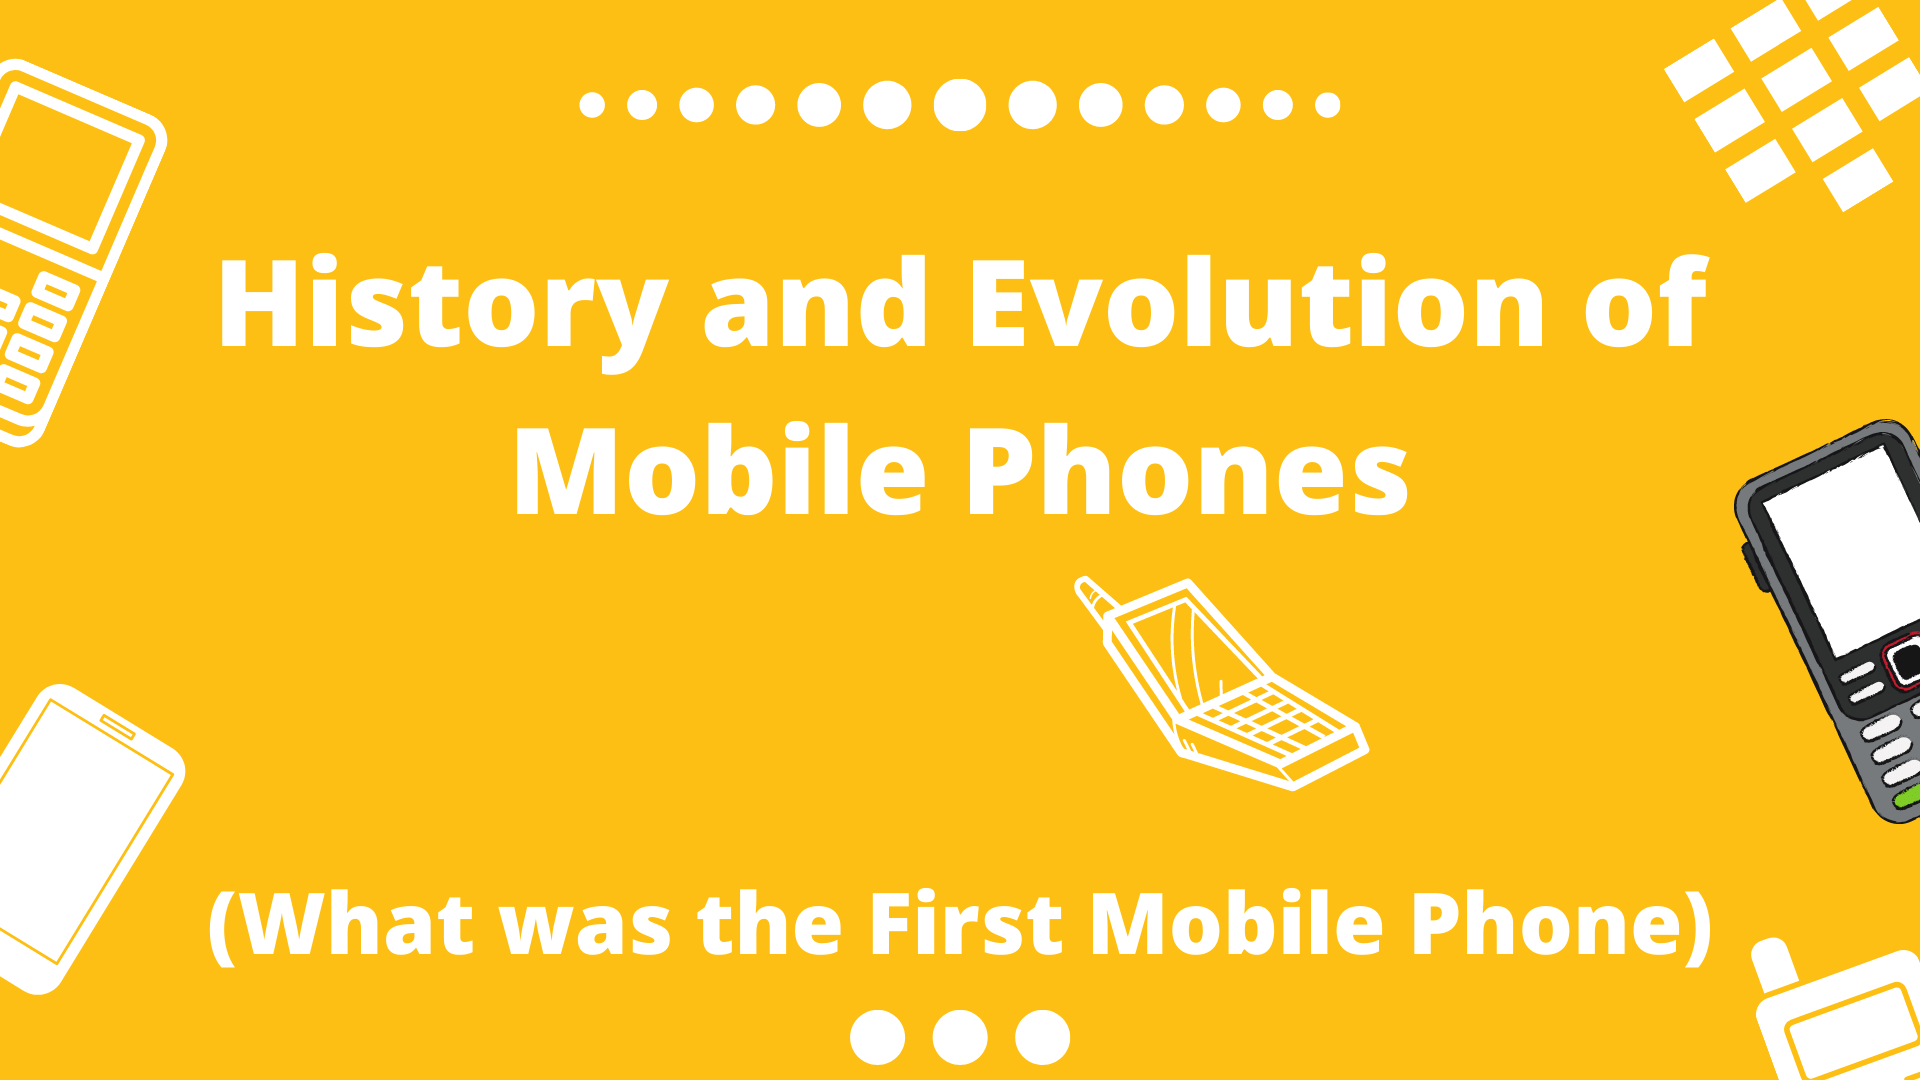 History and Evolution of Mobile Phones